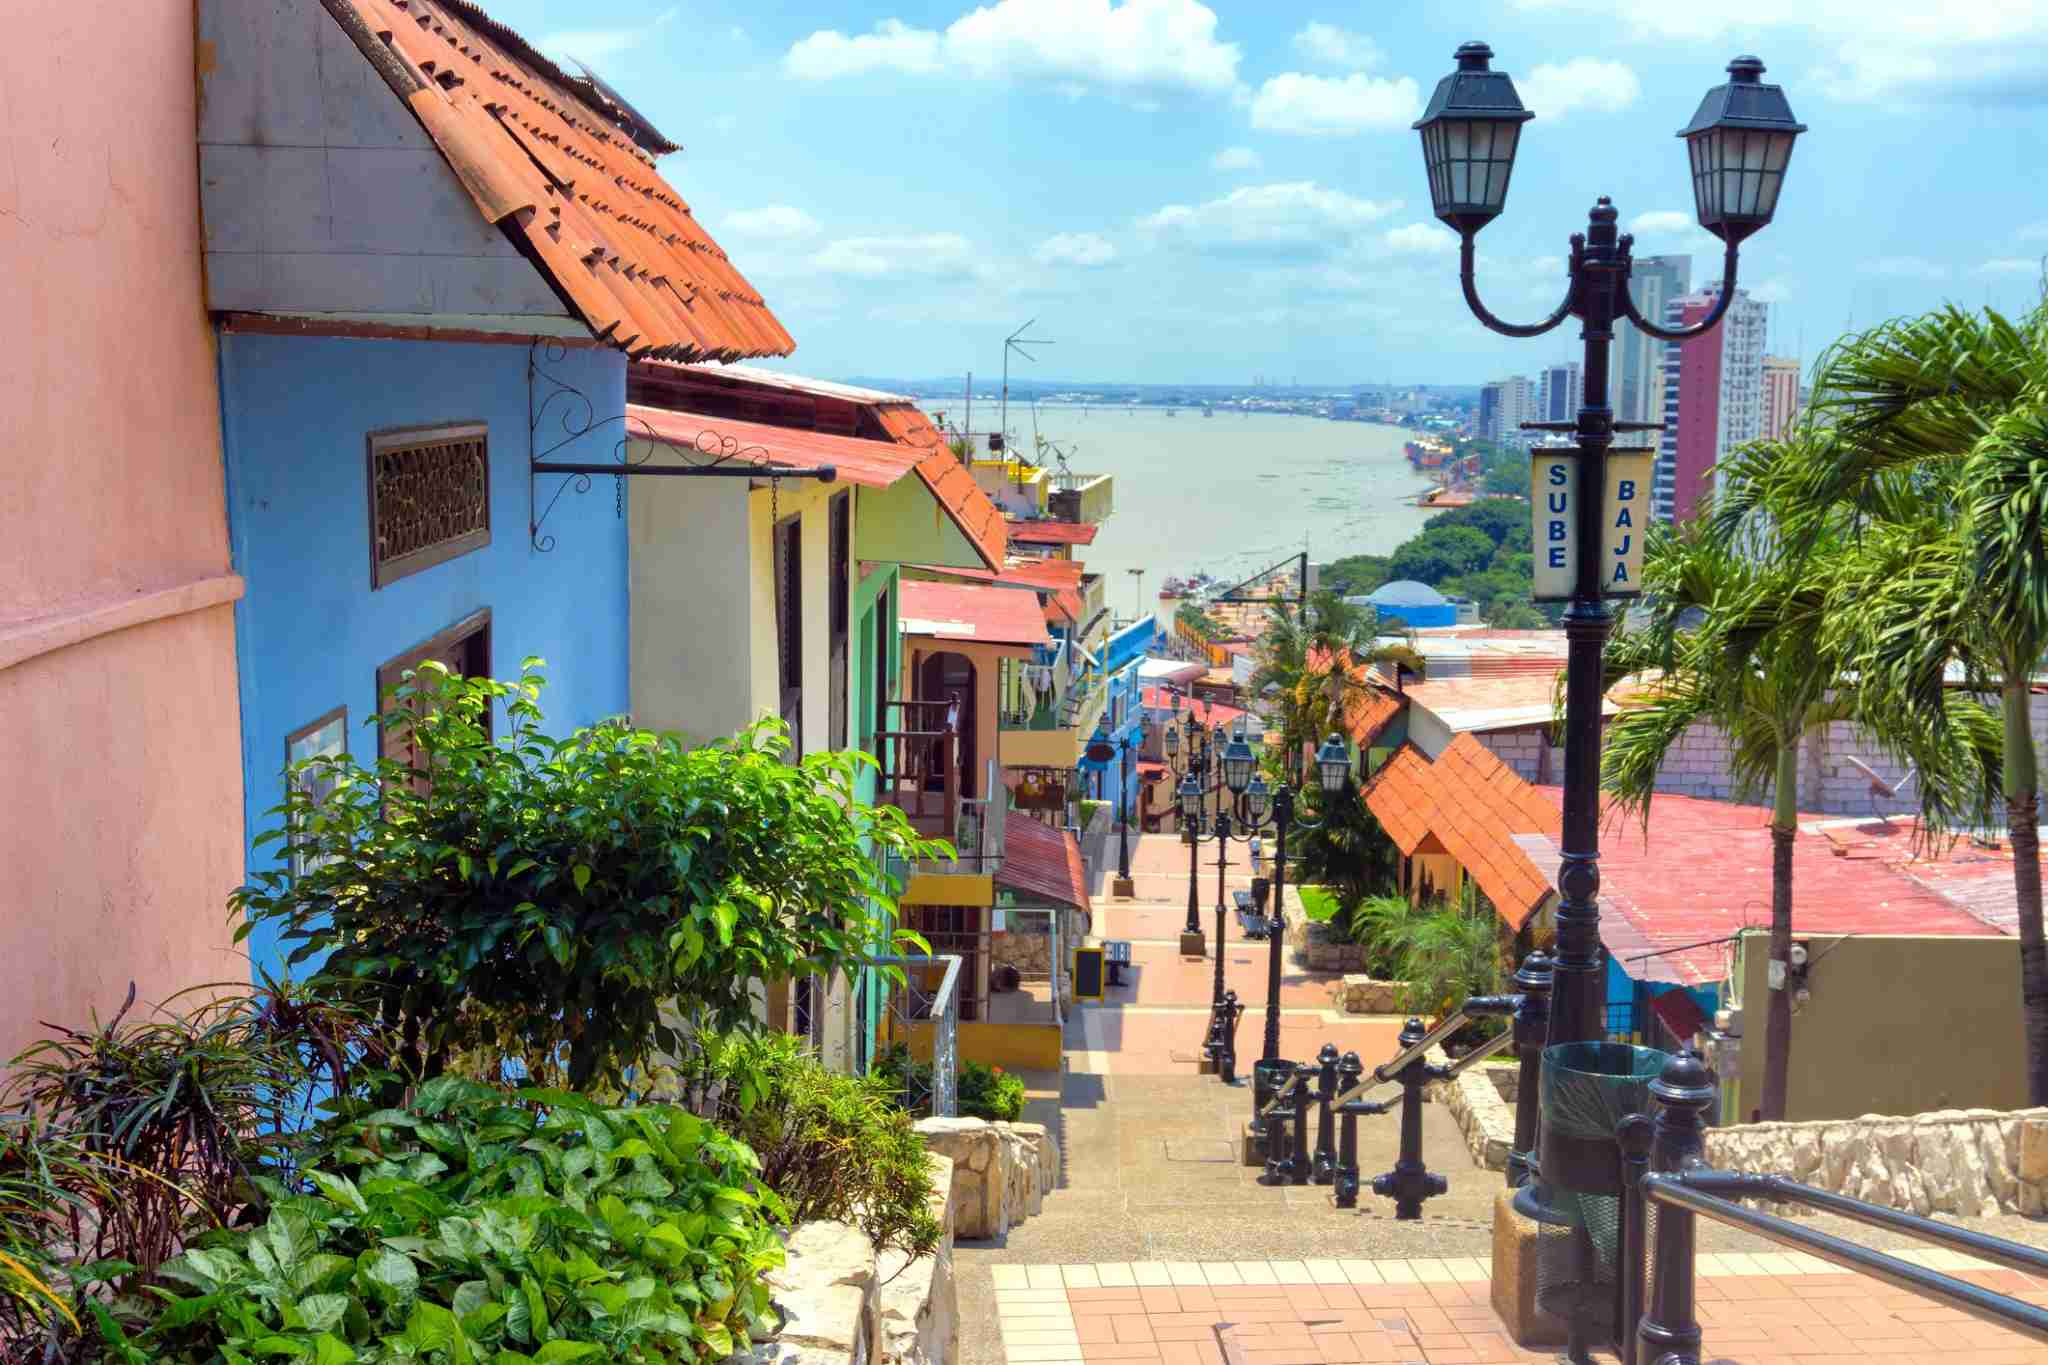 If Guayaquil, Ecuador, if on your bucket list, we